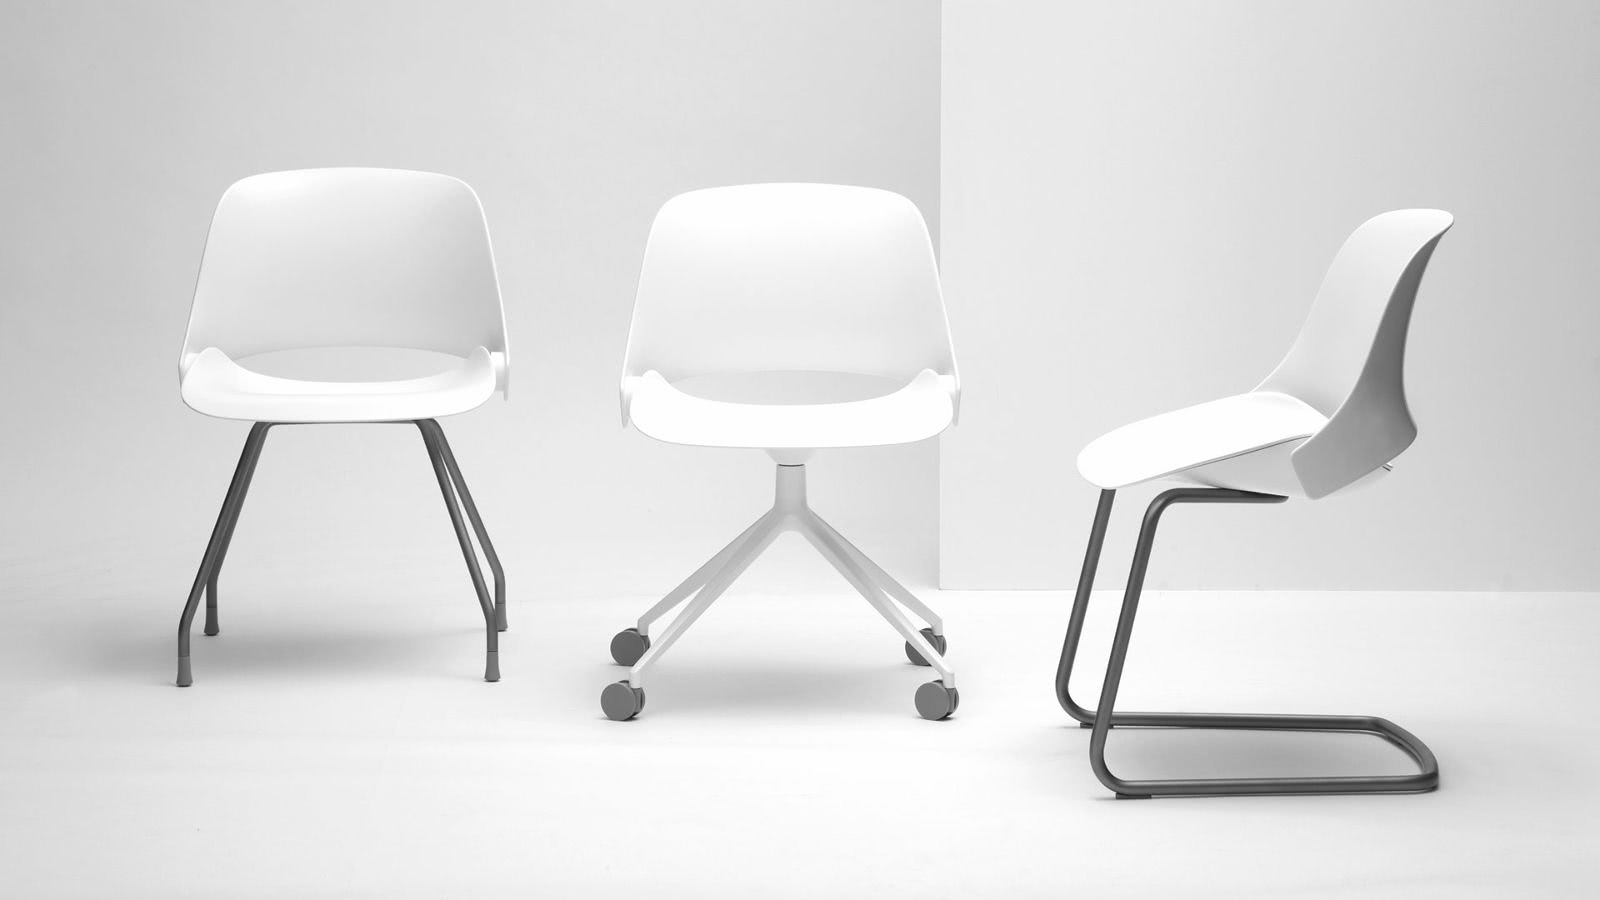 Body Built Chairs Humanscale Ergonomic Office Furniture Solutions